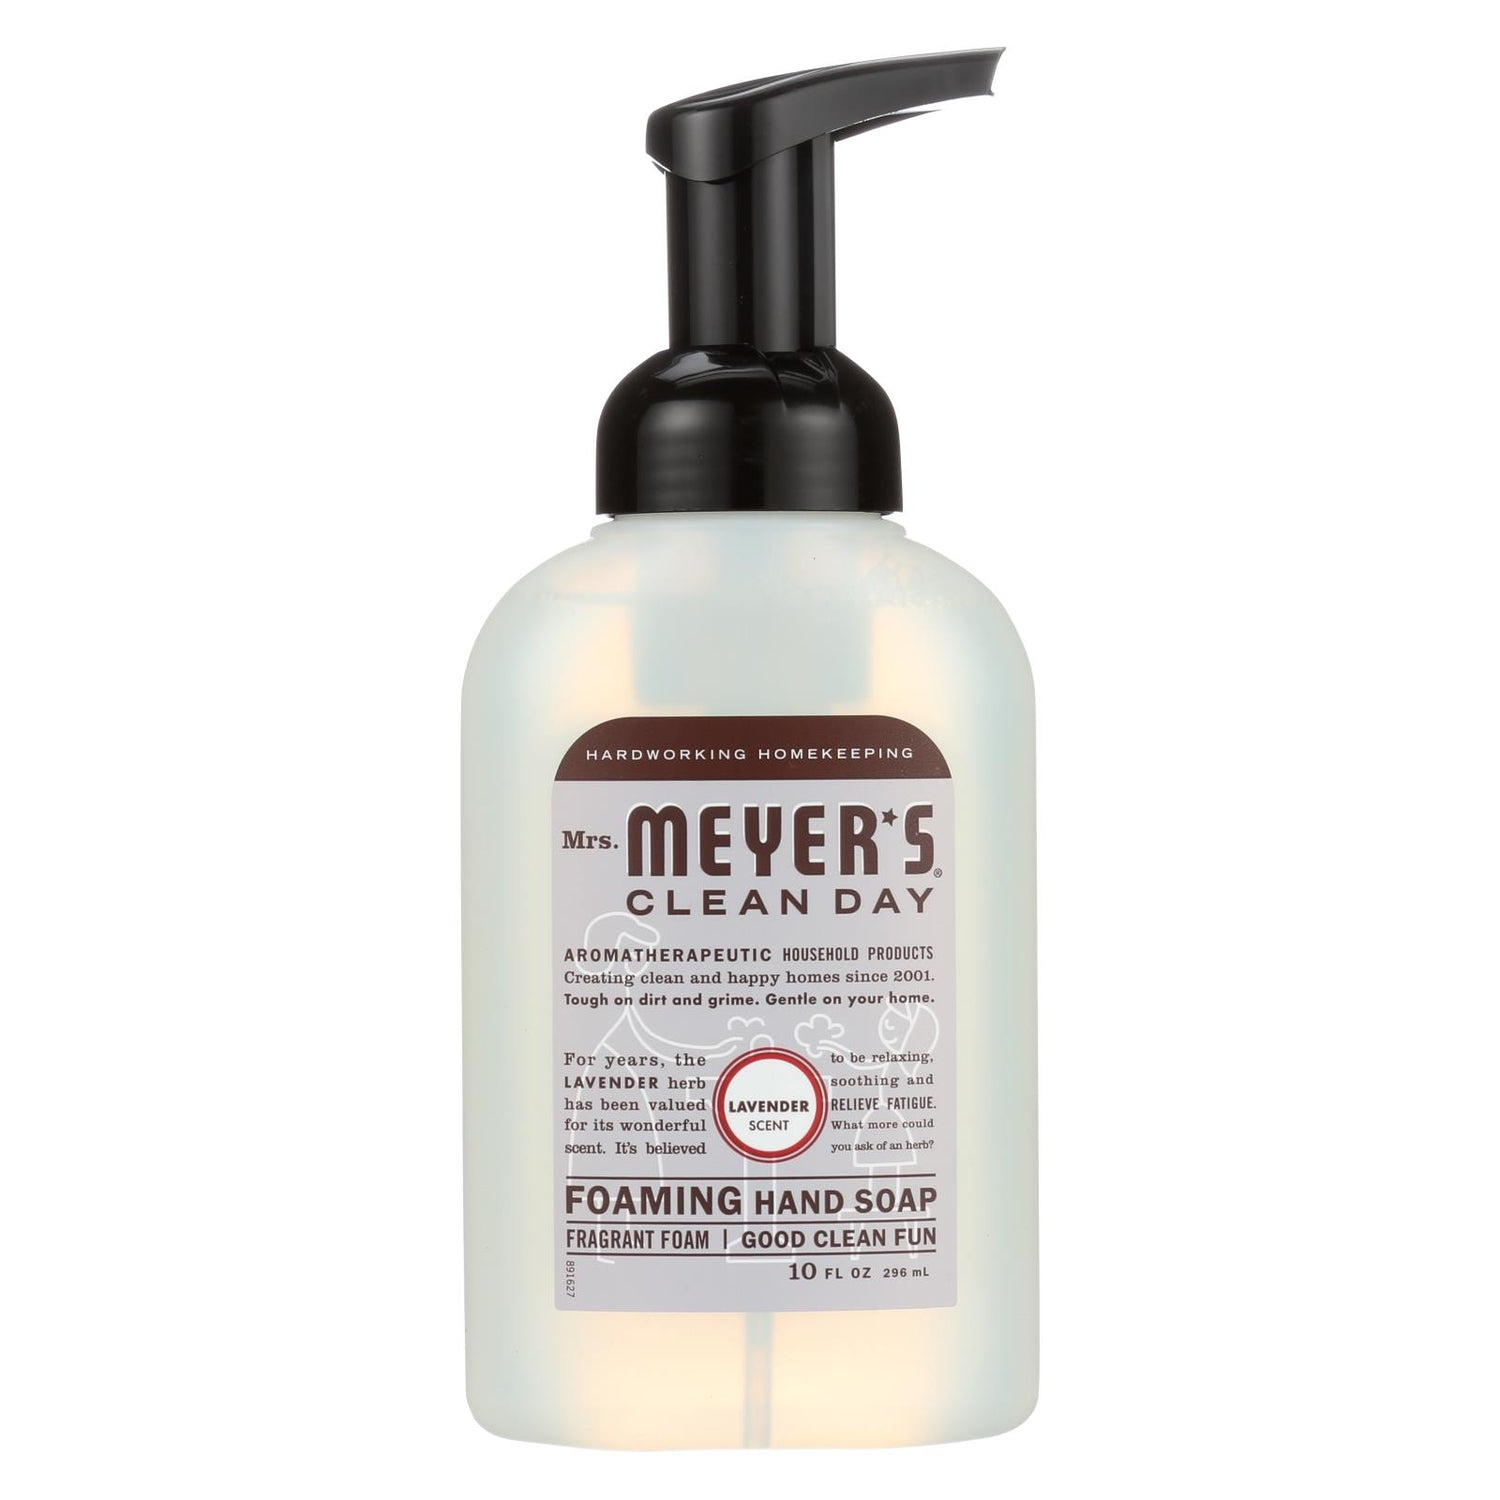 Mrs. Meyer's Foaming Hand Soap - Lavender - 10 Fl Oz